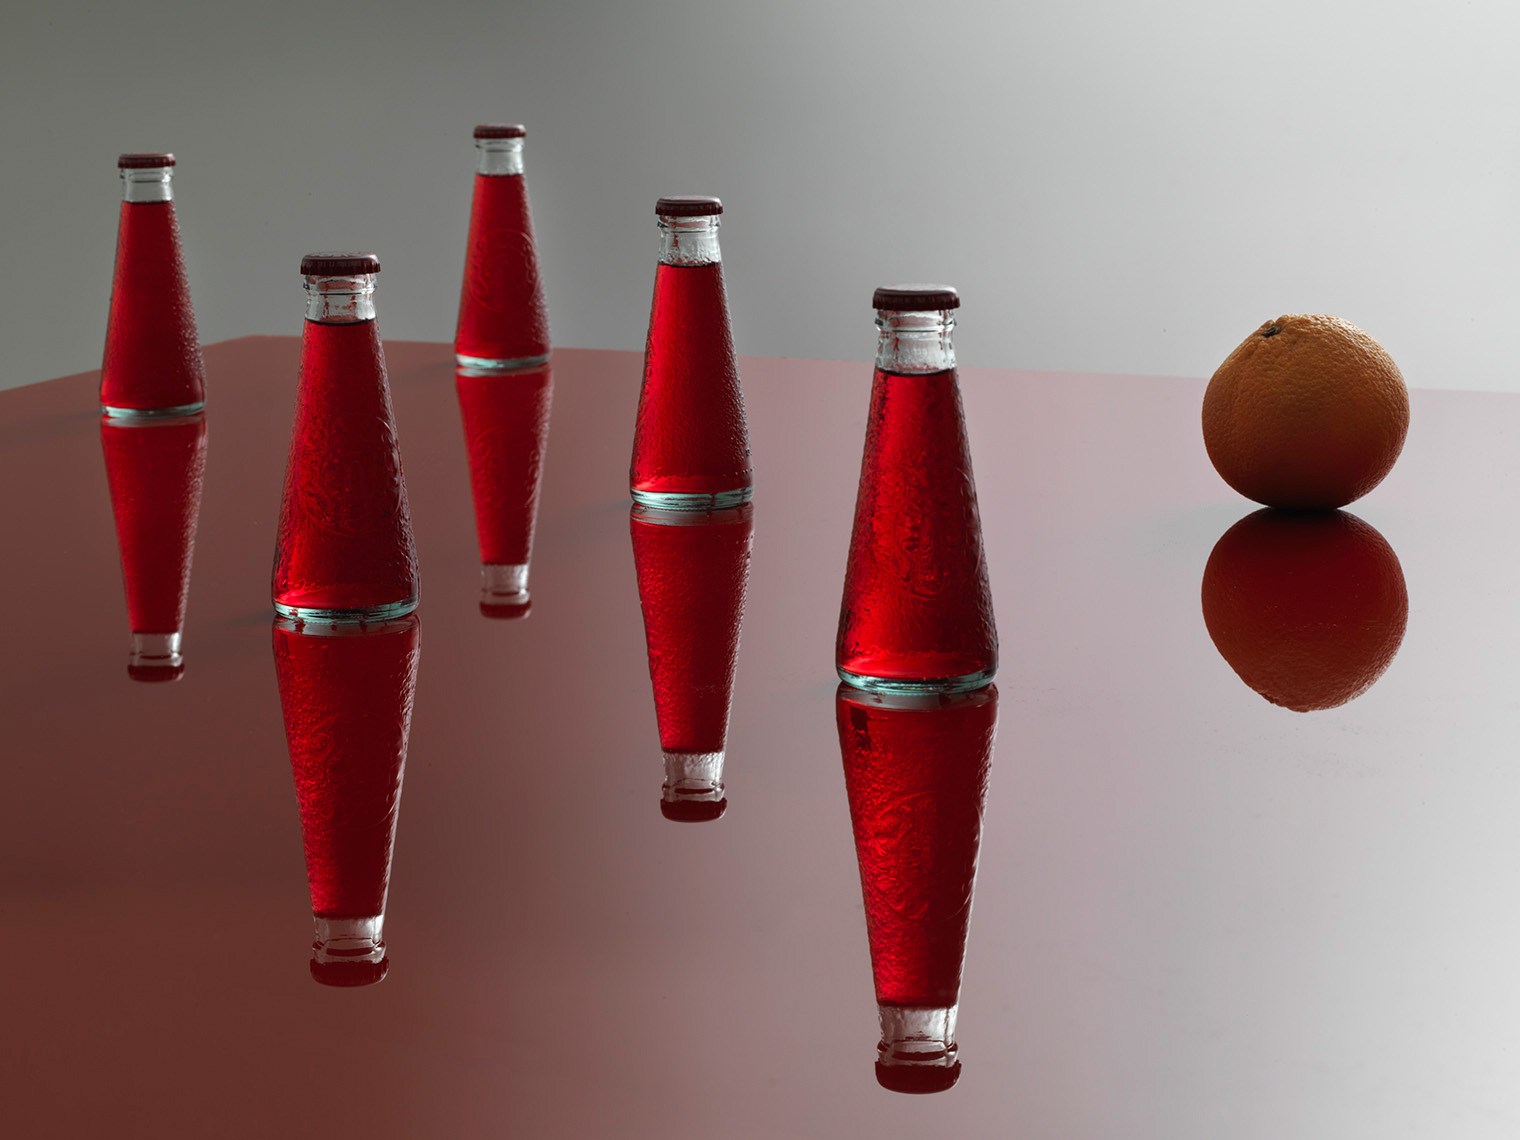 campari-bottle-photography-red-jim-golden